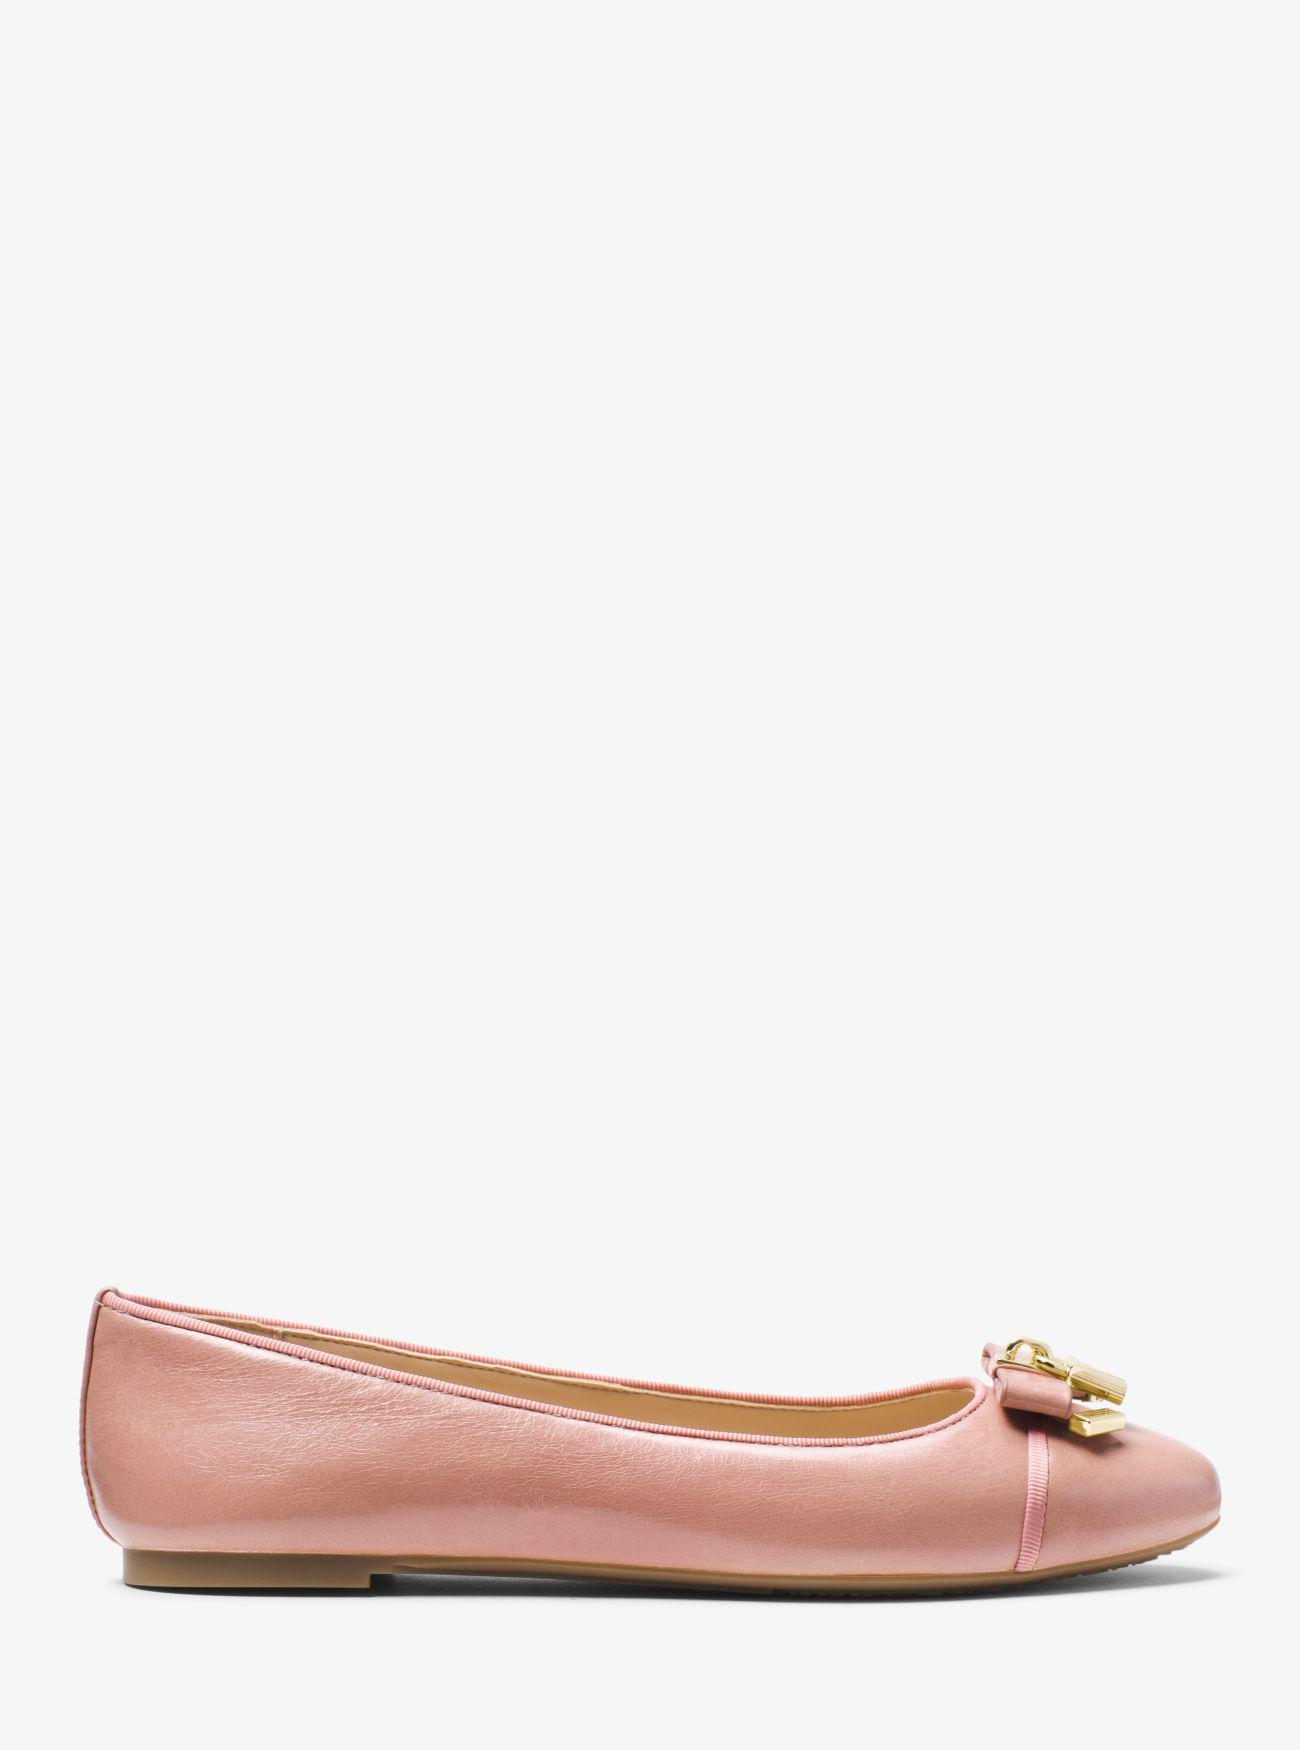 9678368c327c Lyst - Michael Kors Alice Leather Ballet Flat in Pink